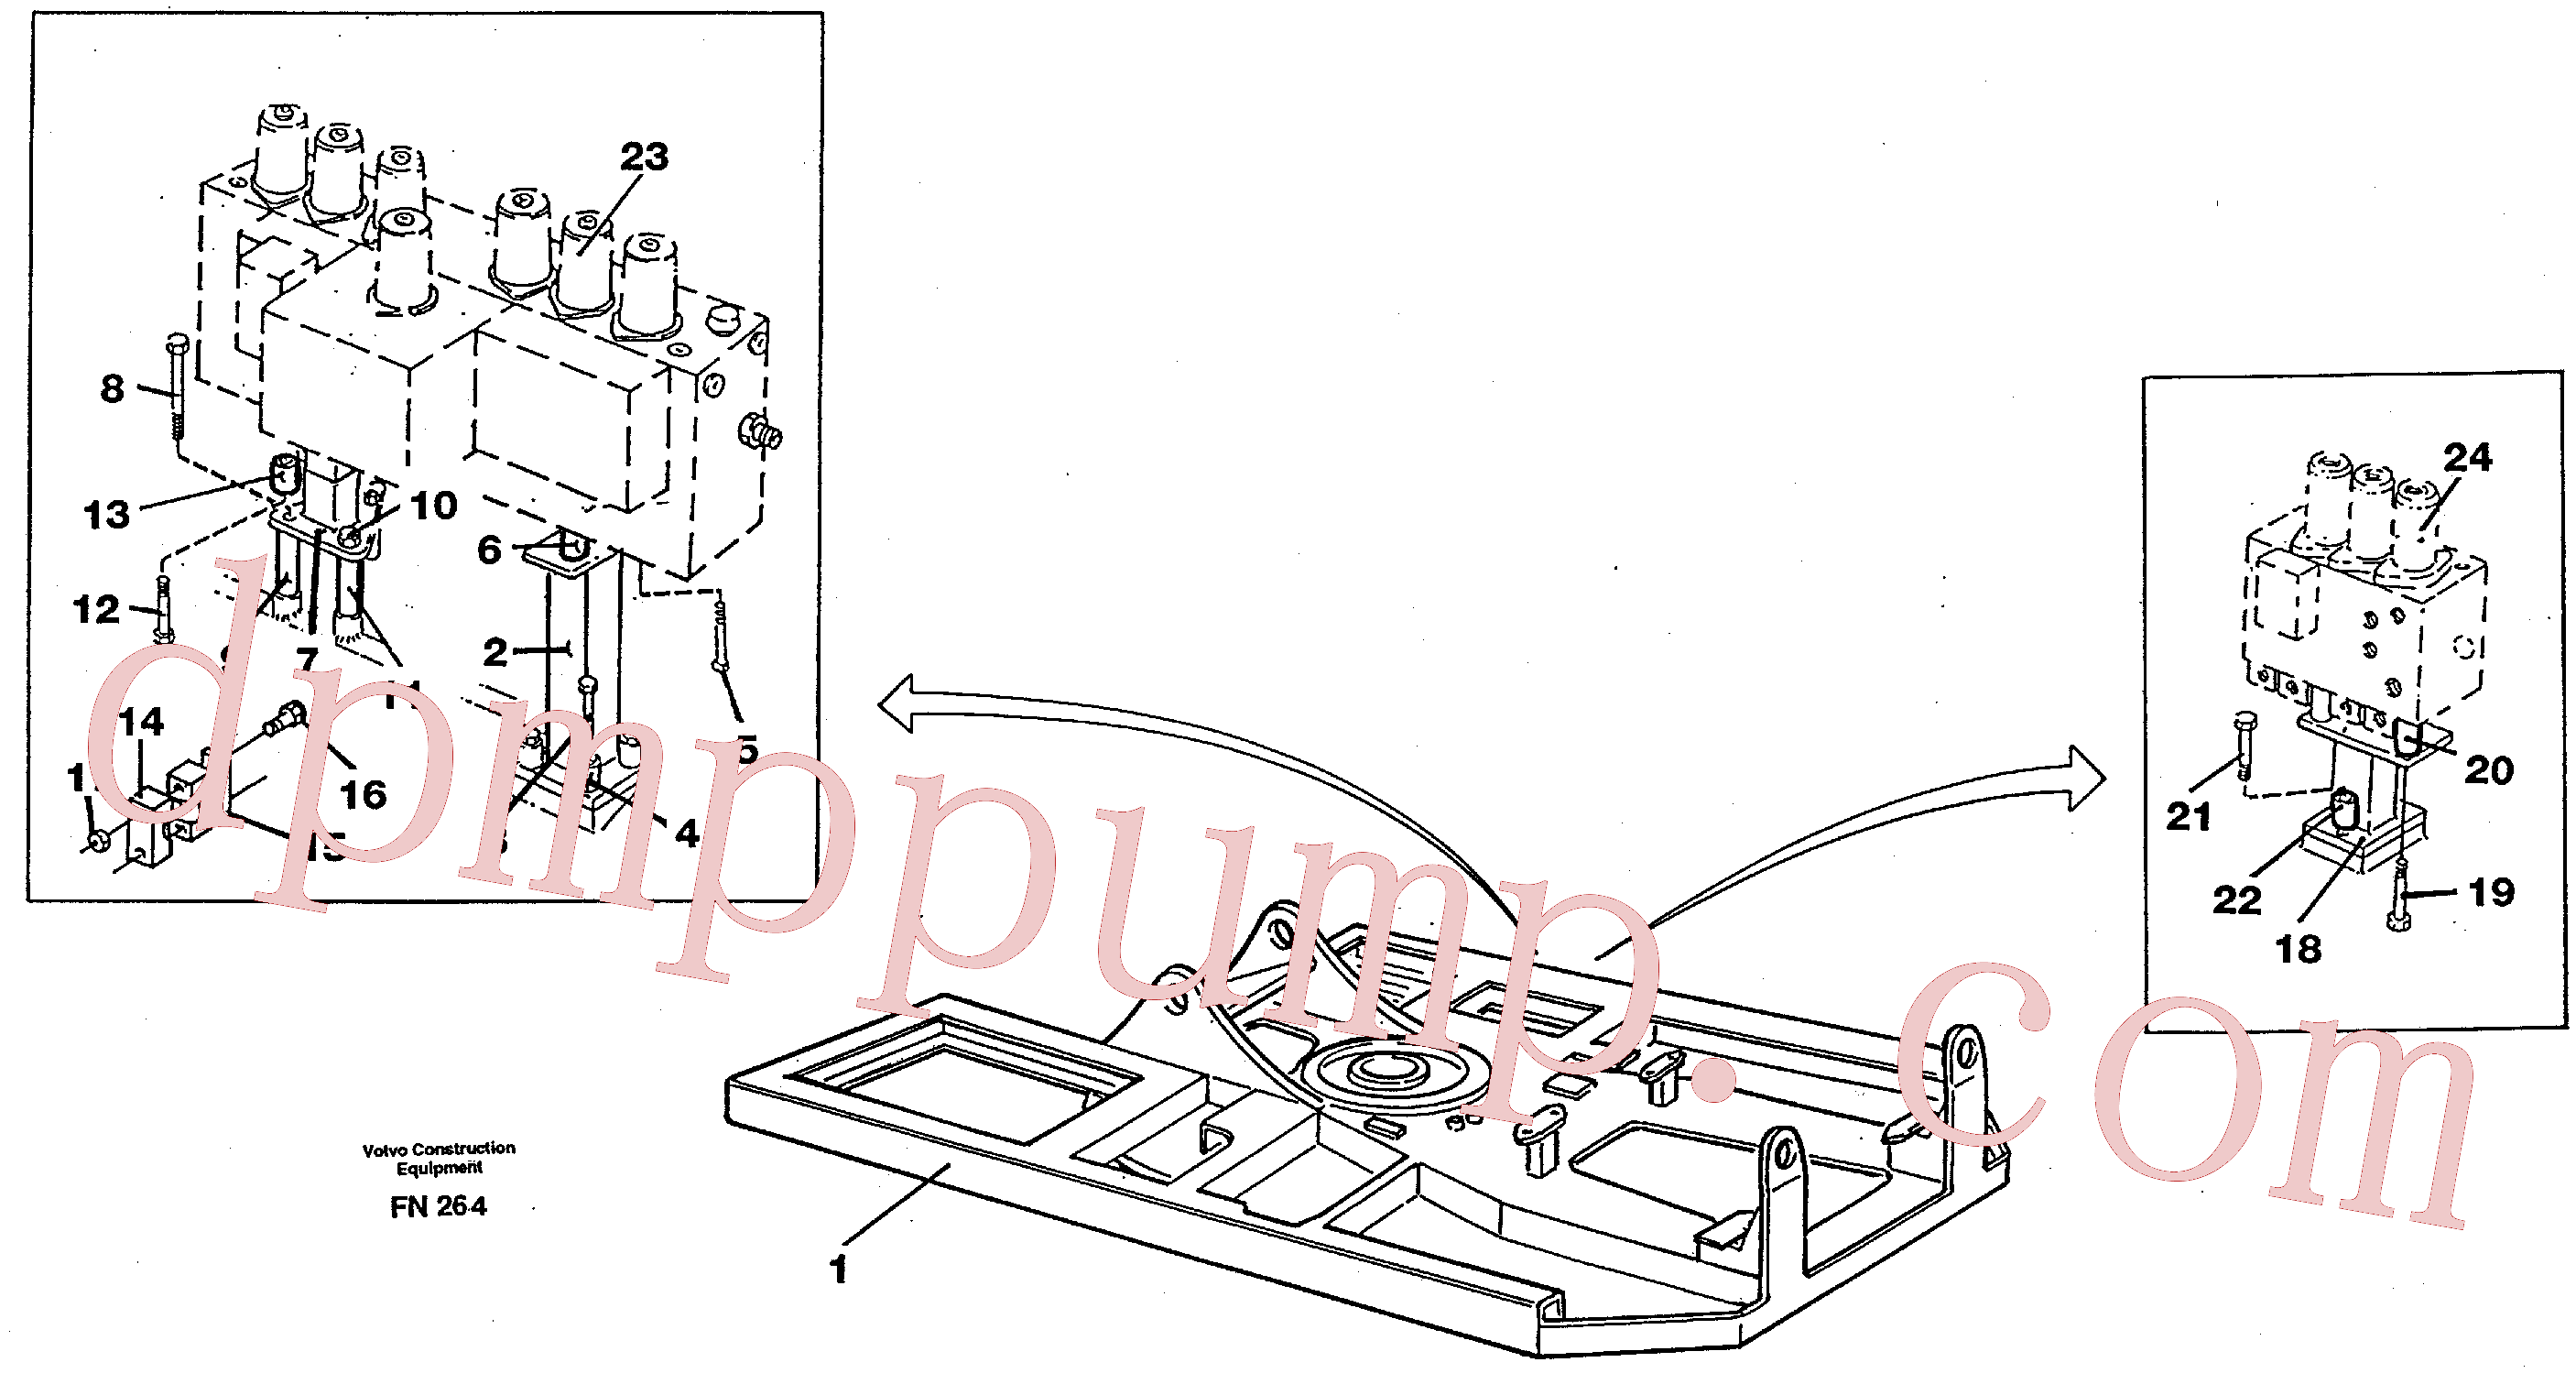 VOE13955328 for Volvo Superstructure(FN264 assembly)